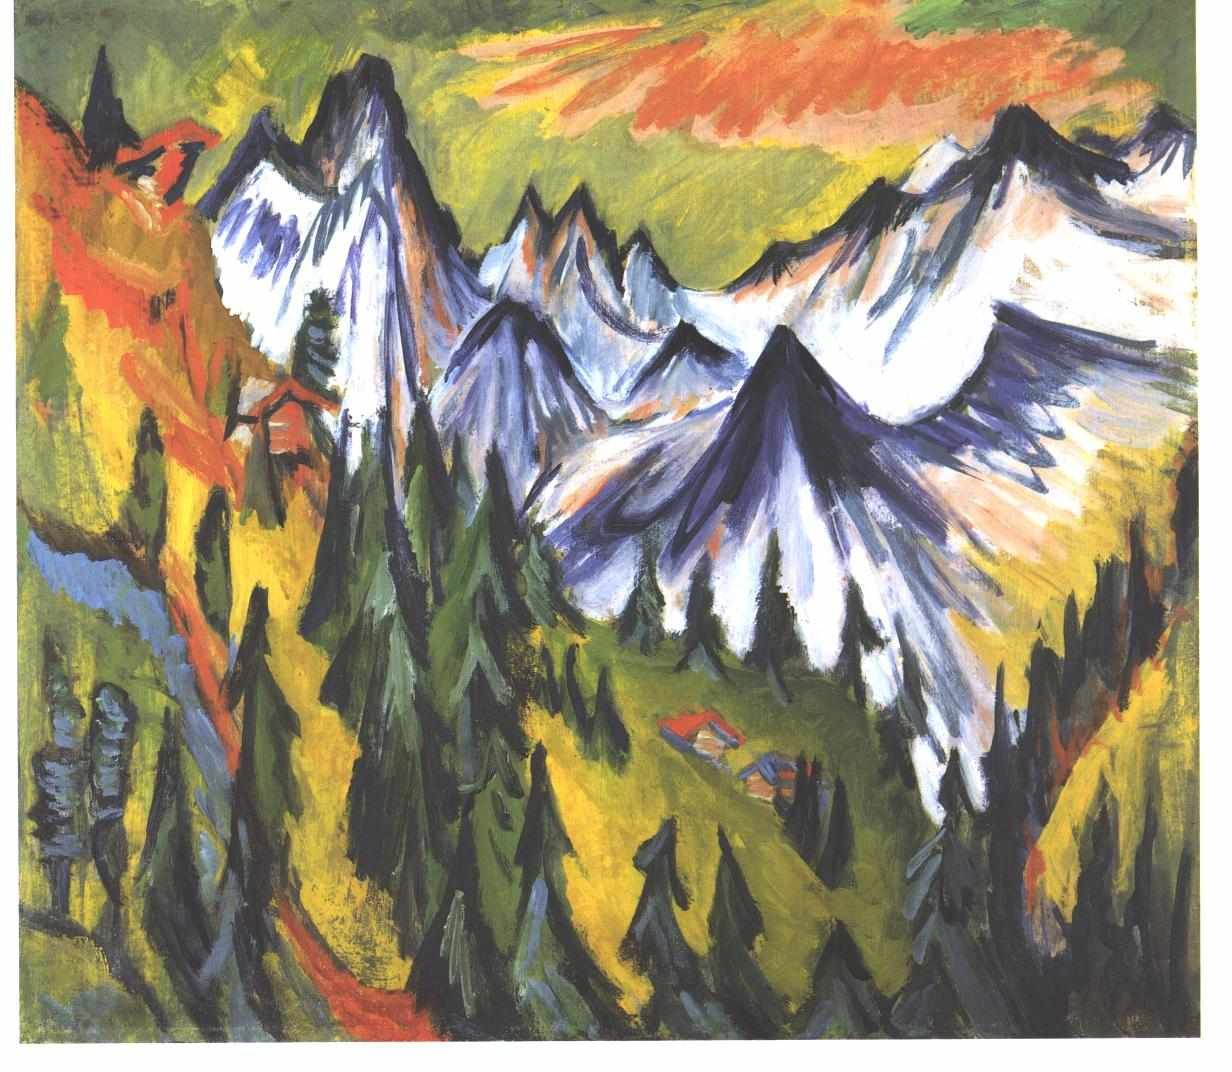 Mountain Top by @artistkirchner #expressionism